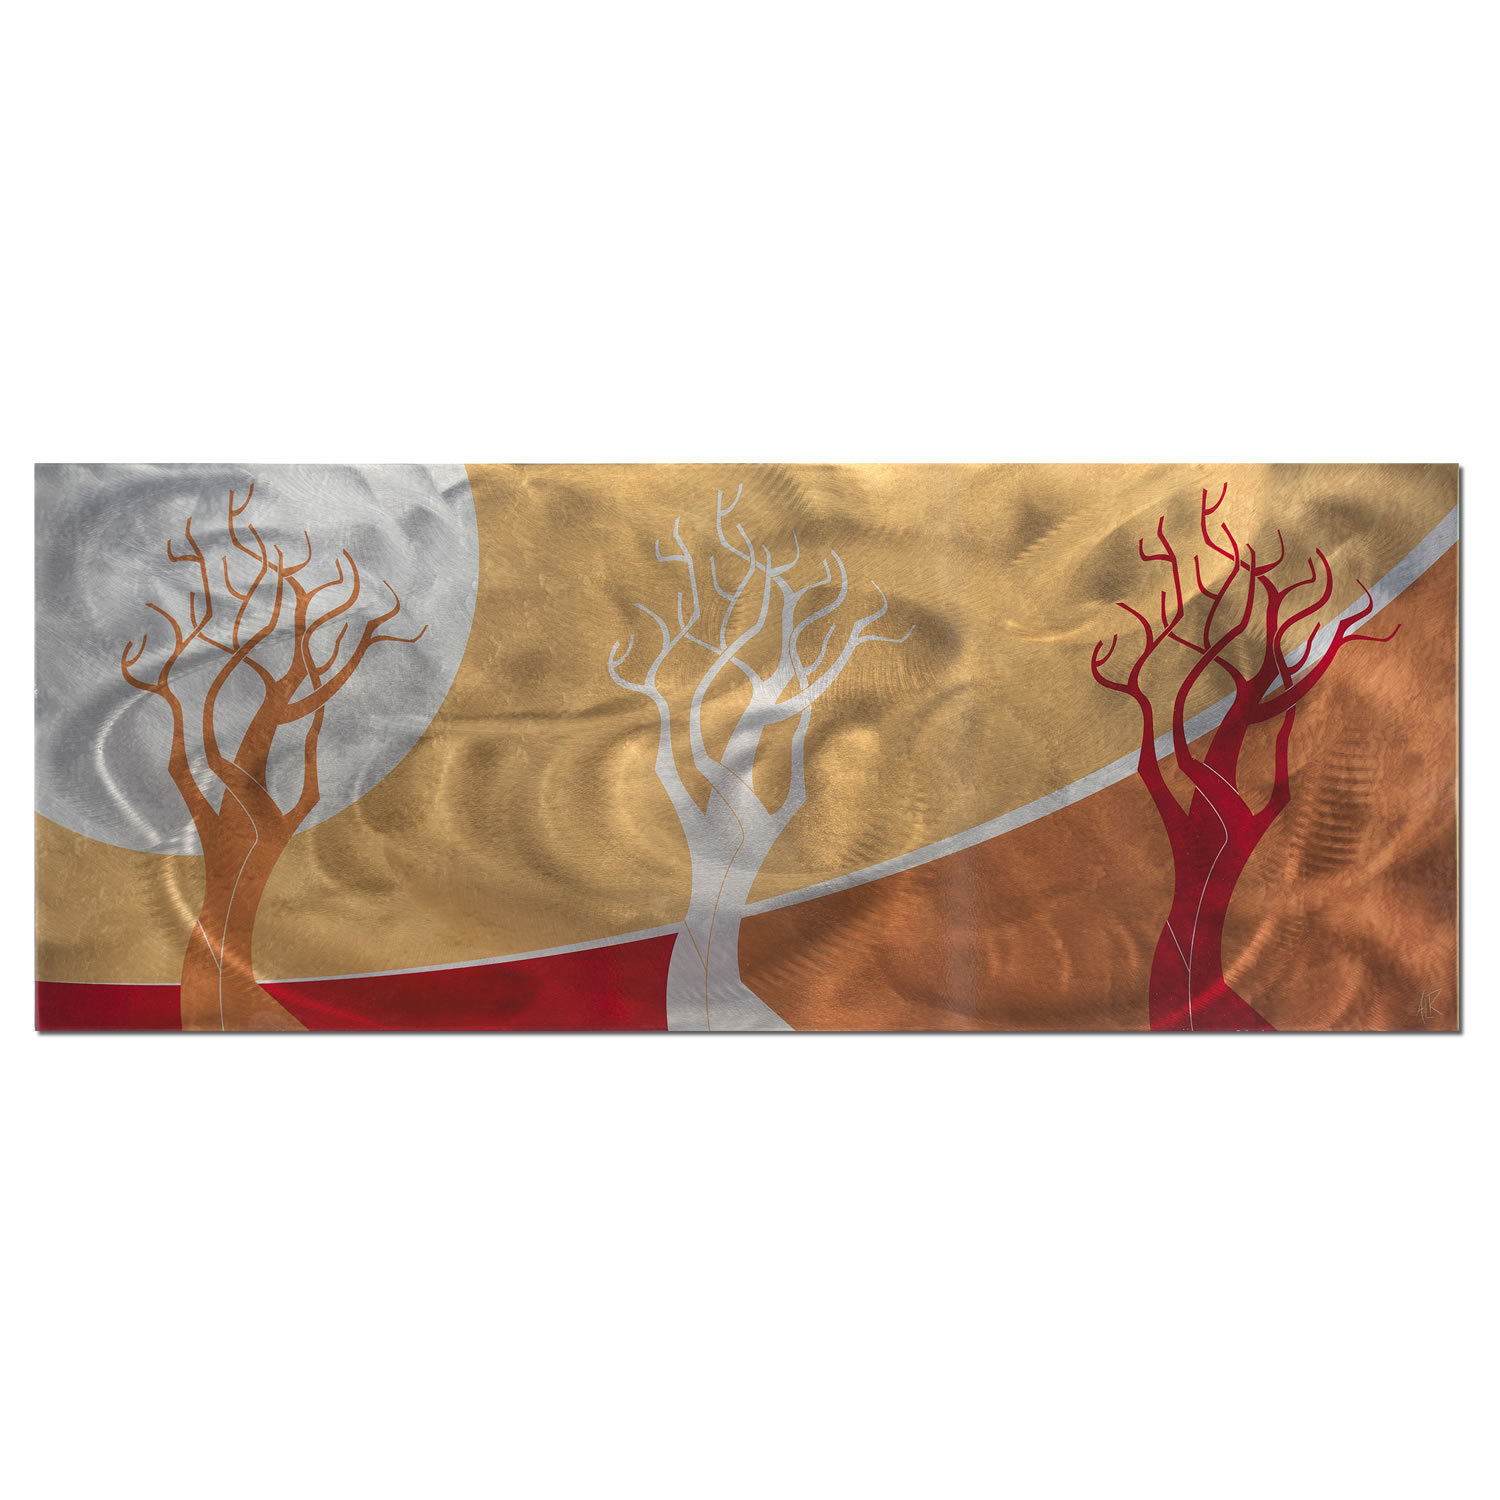 'Golden Seasons' - Abstract Landscape Painting - Modern Tree Design Art - 3 Contemporary Trees in Orange, Yellow, Red Artwork 51f37f6a1b0ba08240002531